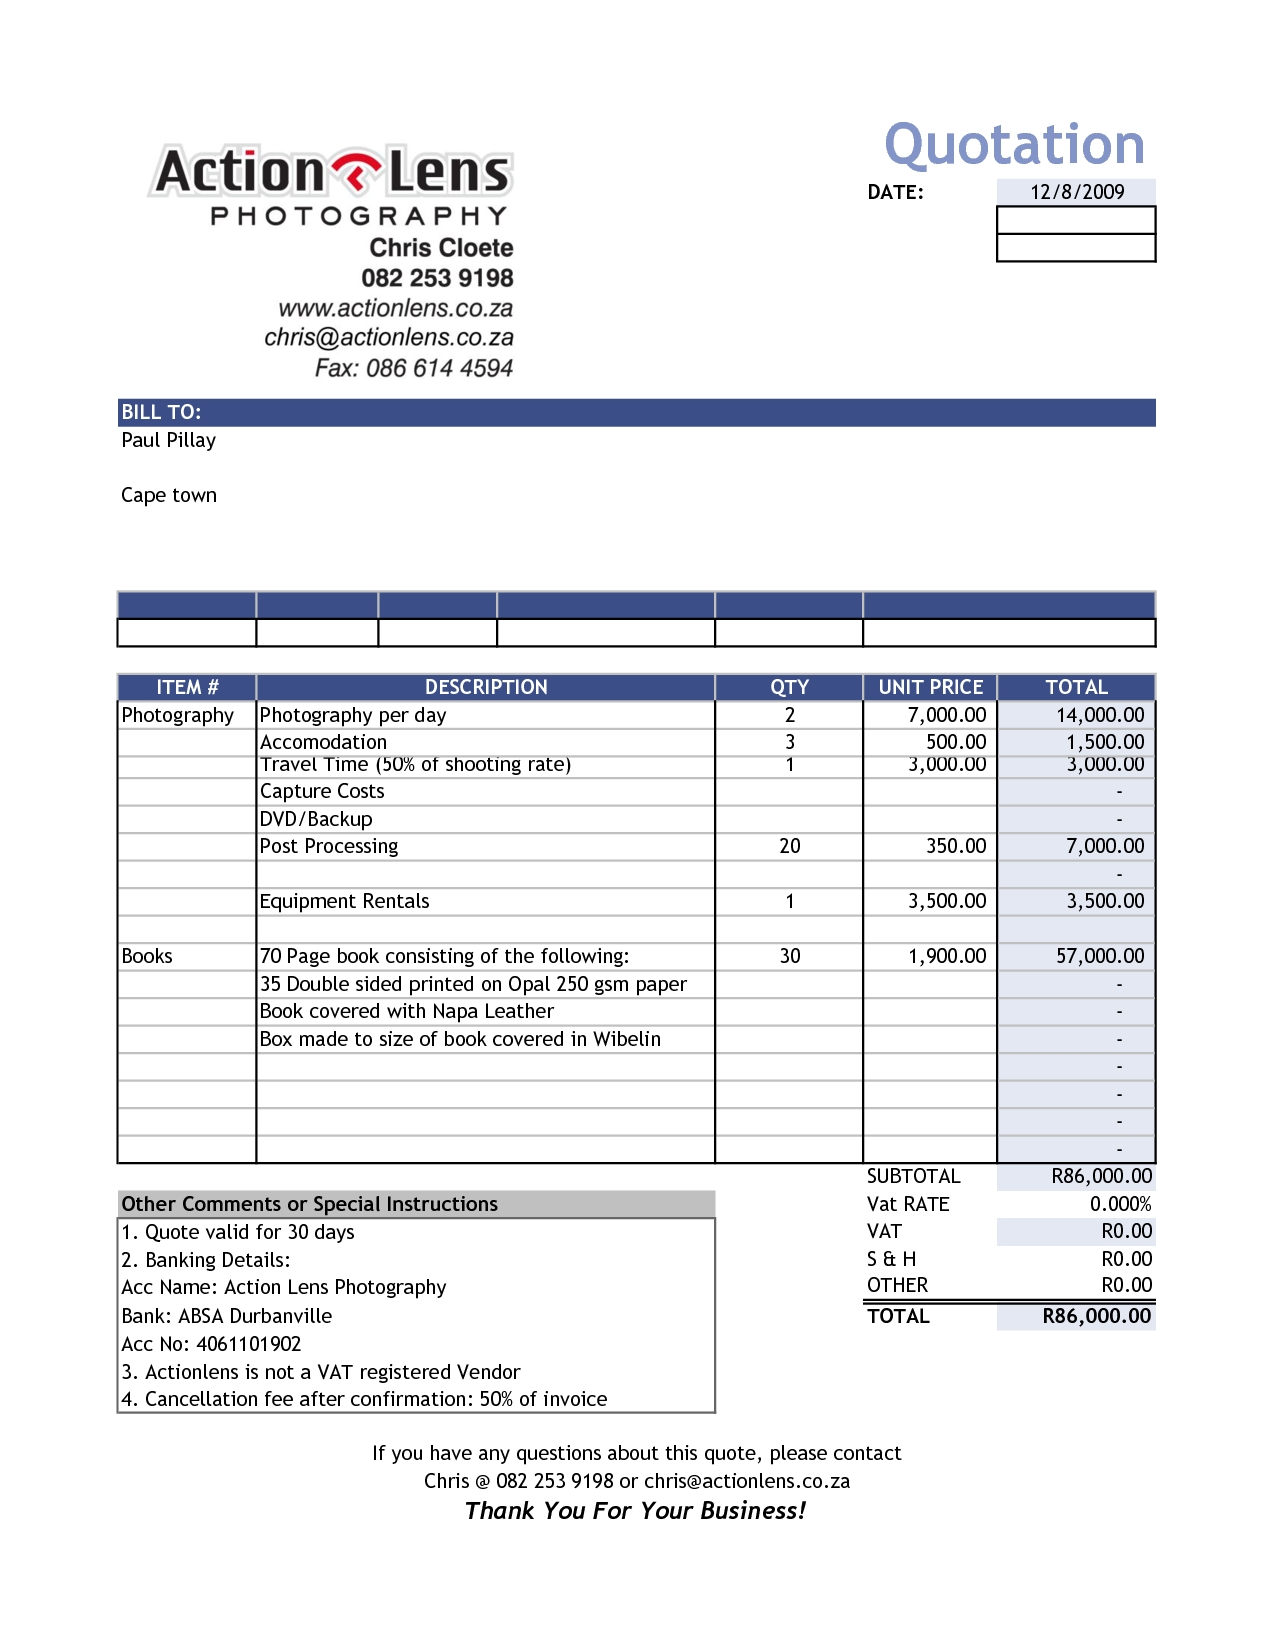 sales invoice template excel sales invoice template invoice format of sales invoice